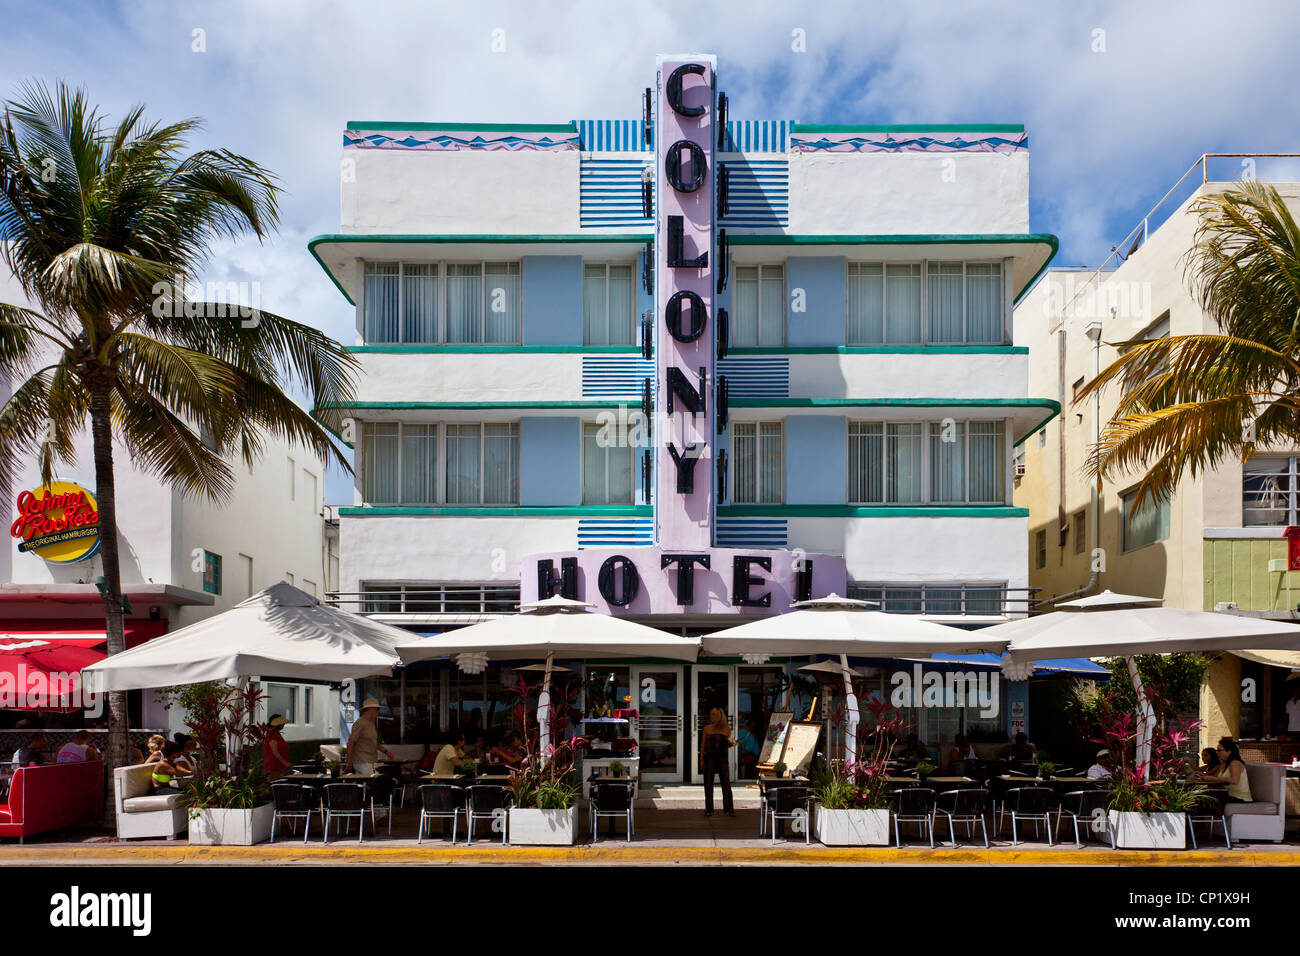 Art Deco architecture along Ocean Drive in Miami Beach, Florida, USA. - Stock Image